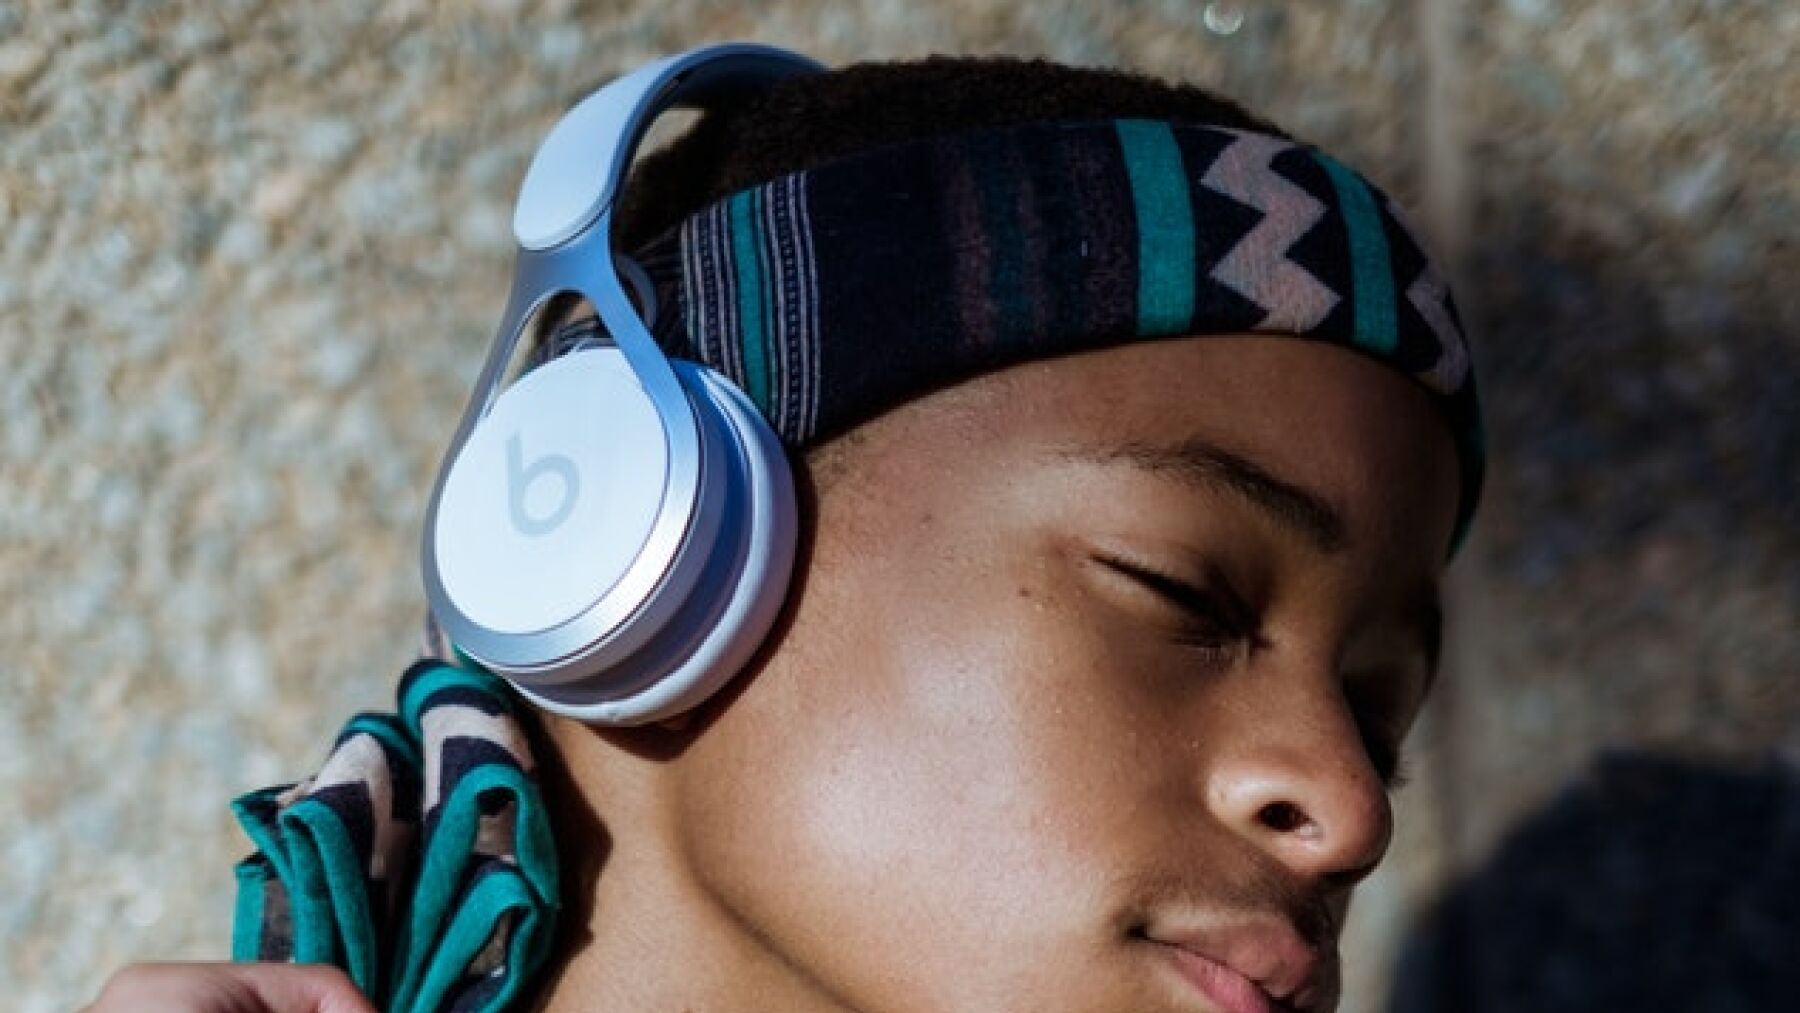 Picture of young black boy listening to music with eyes closed, Credit: Mpemelelo Macu via Picnoi